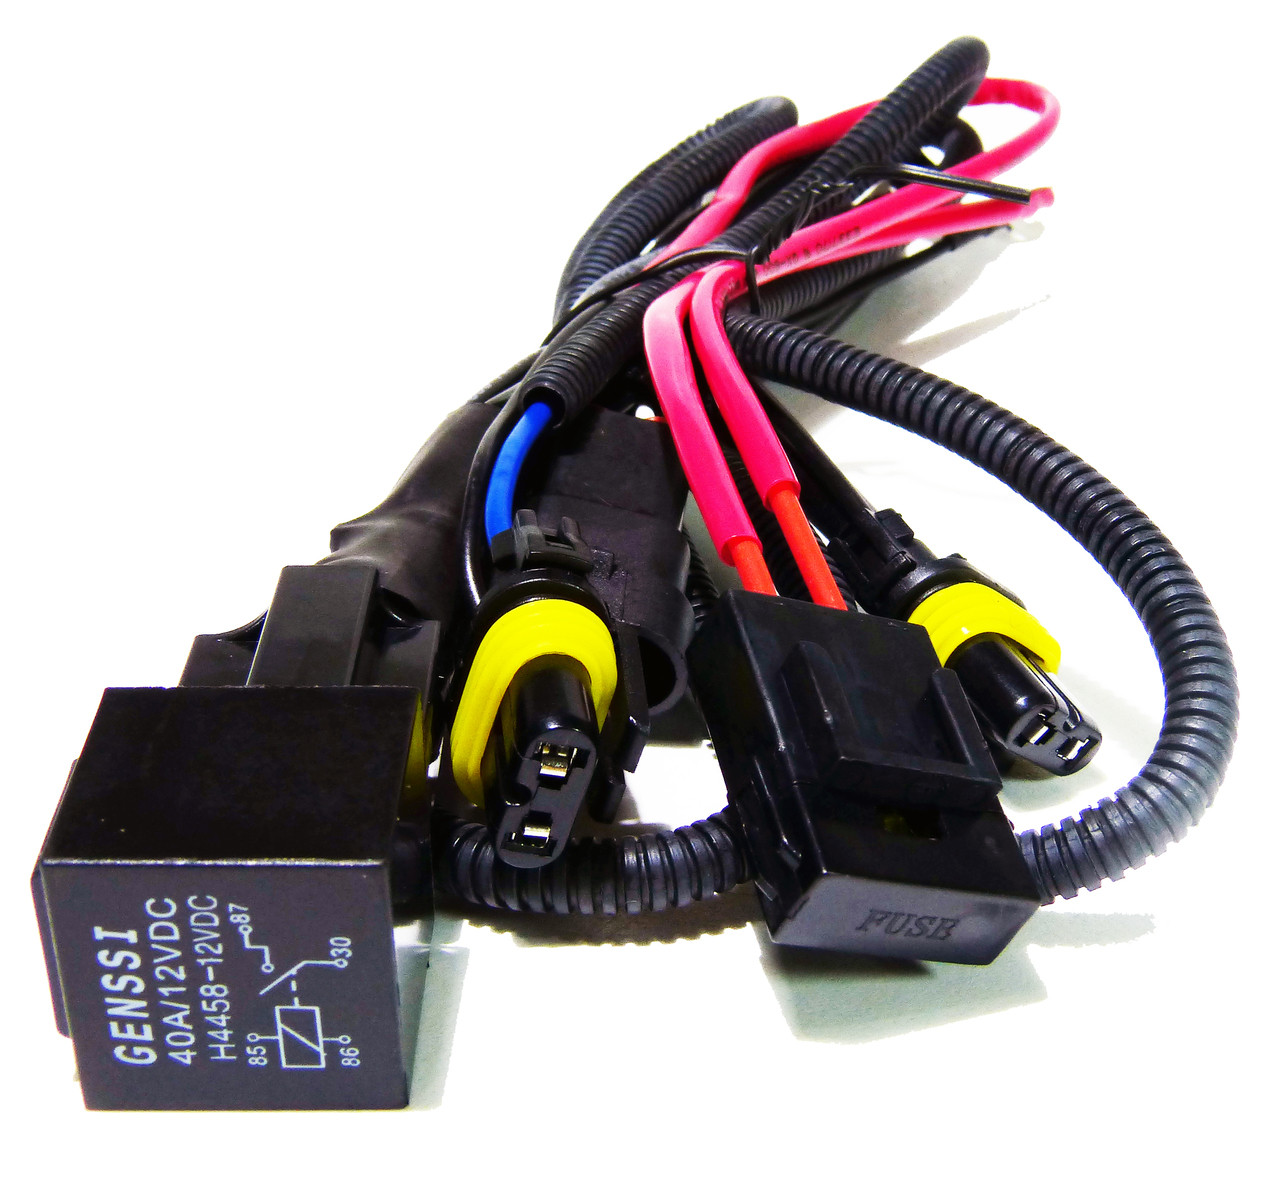 hight resolution of hid xenon wire relay harness 9006 9005 h10 9145 9055 9012